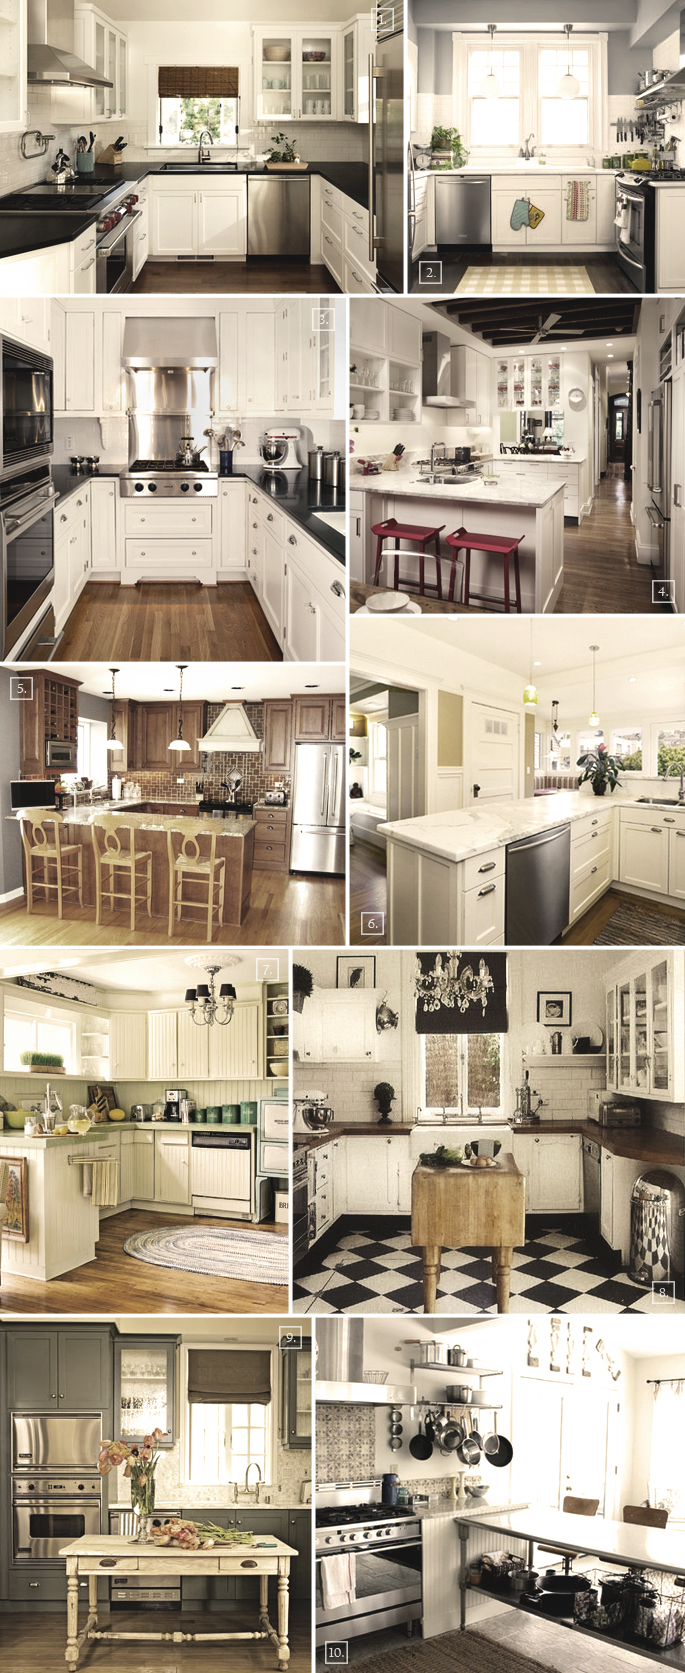 Cooking time u shaped kitchen designs and ideas home for Kitchen ideas u shaped